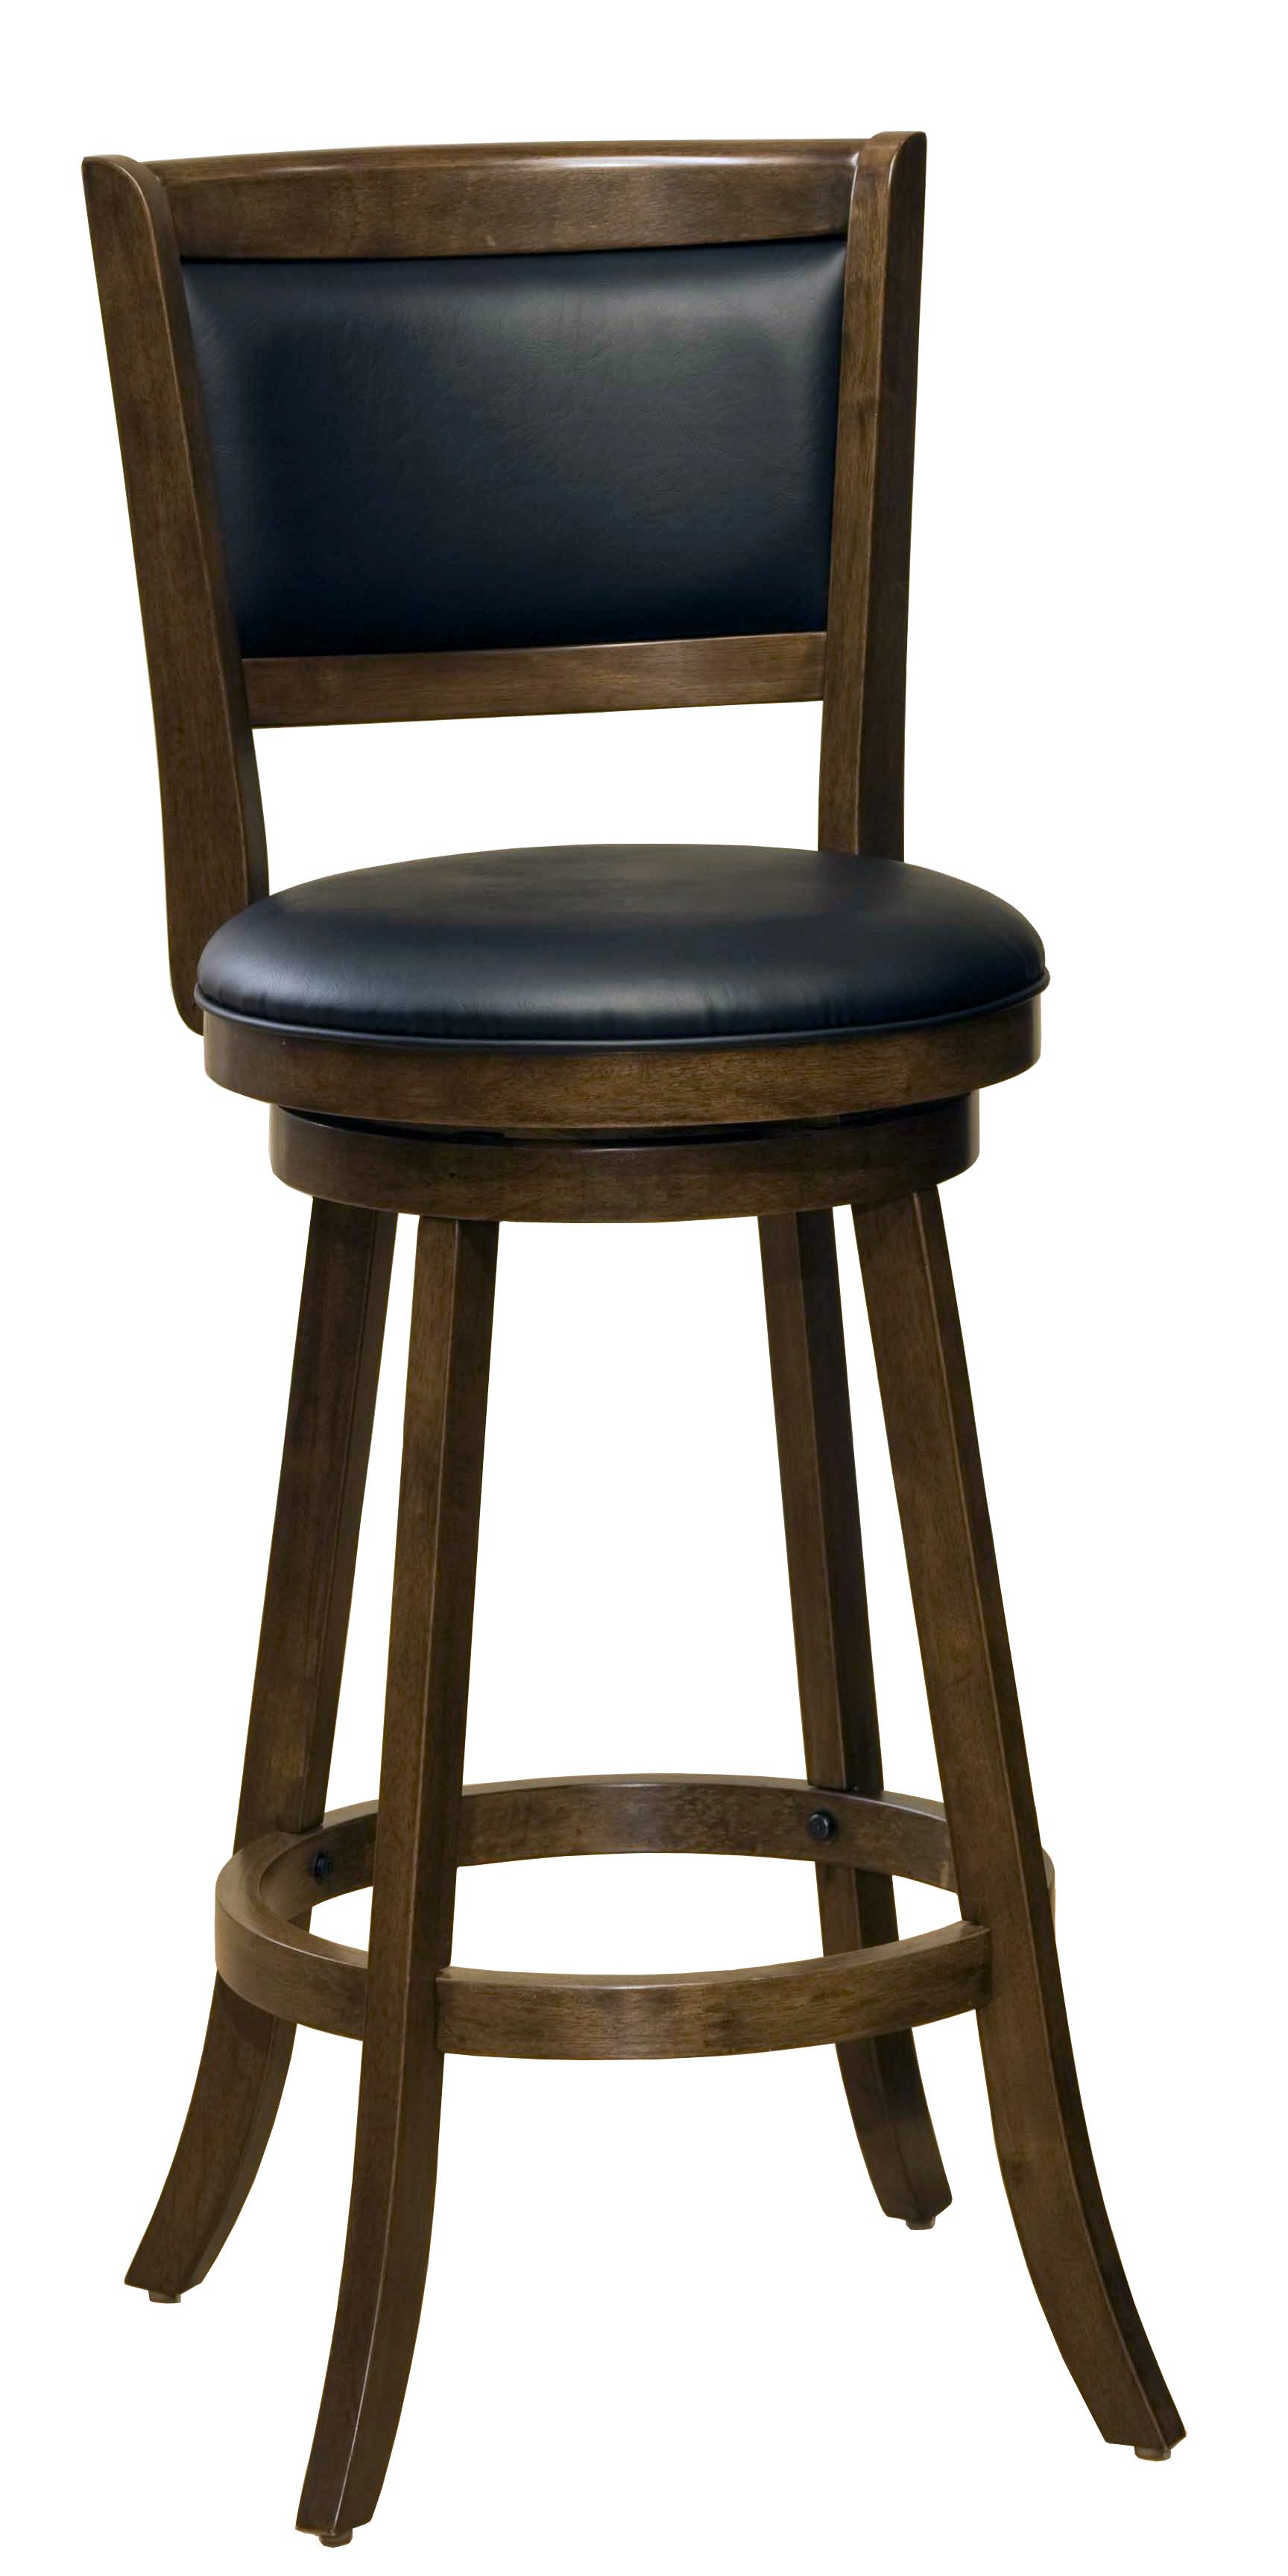 29 Quot Bar Height Dennery Swivel Bar Stool By Hillsdale